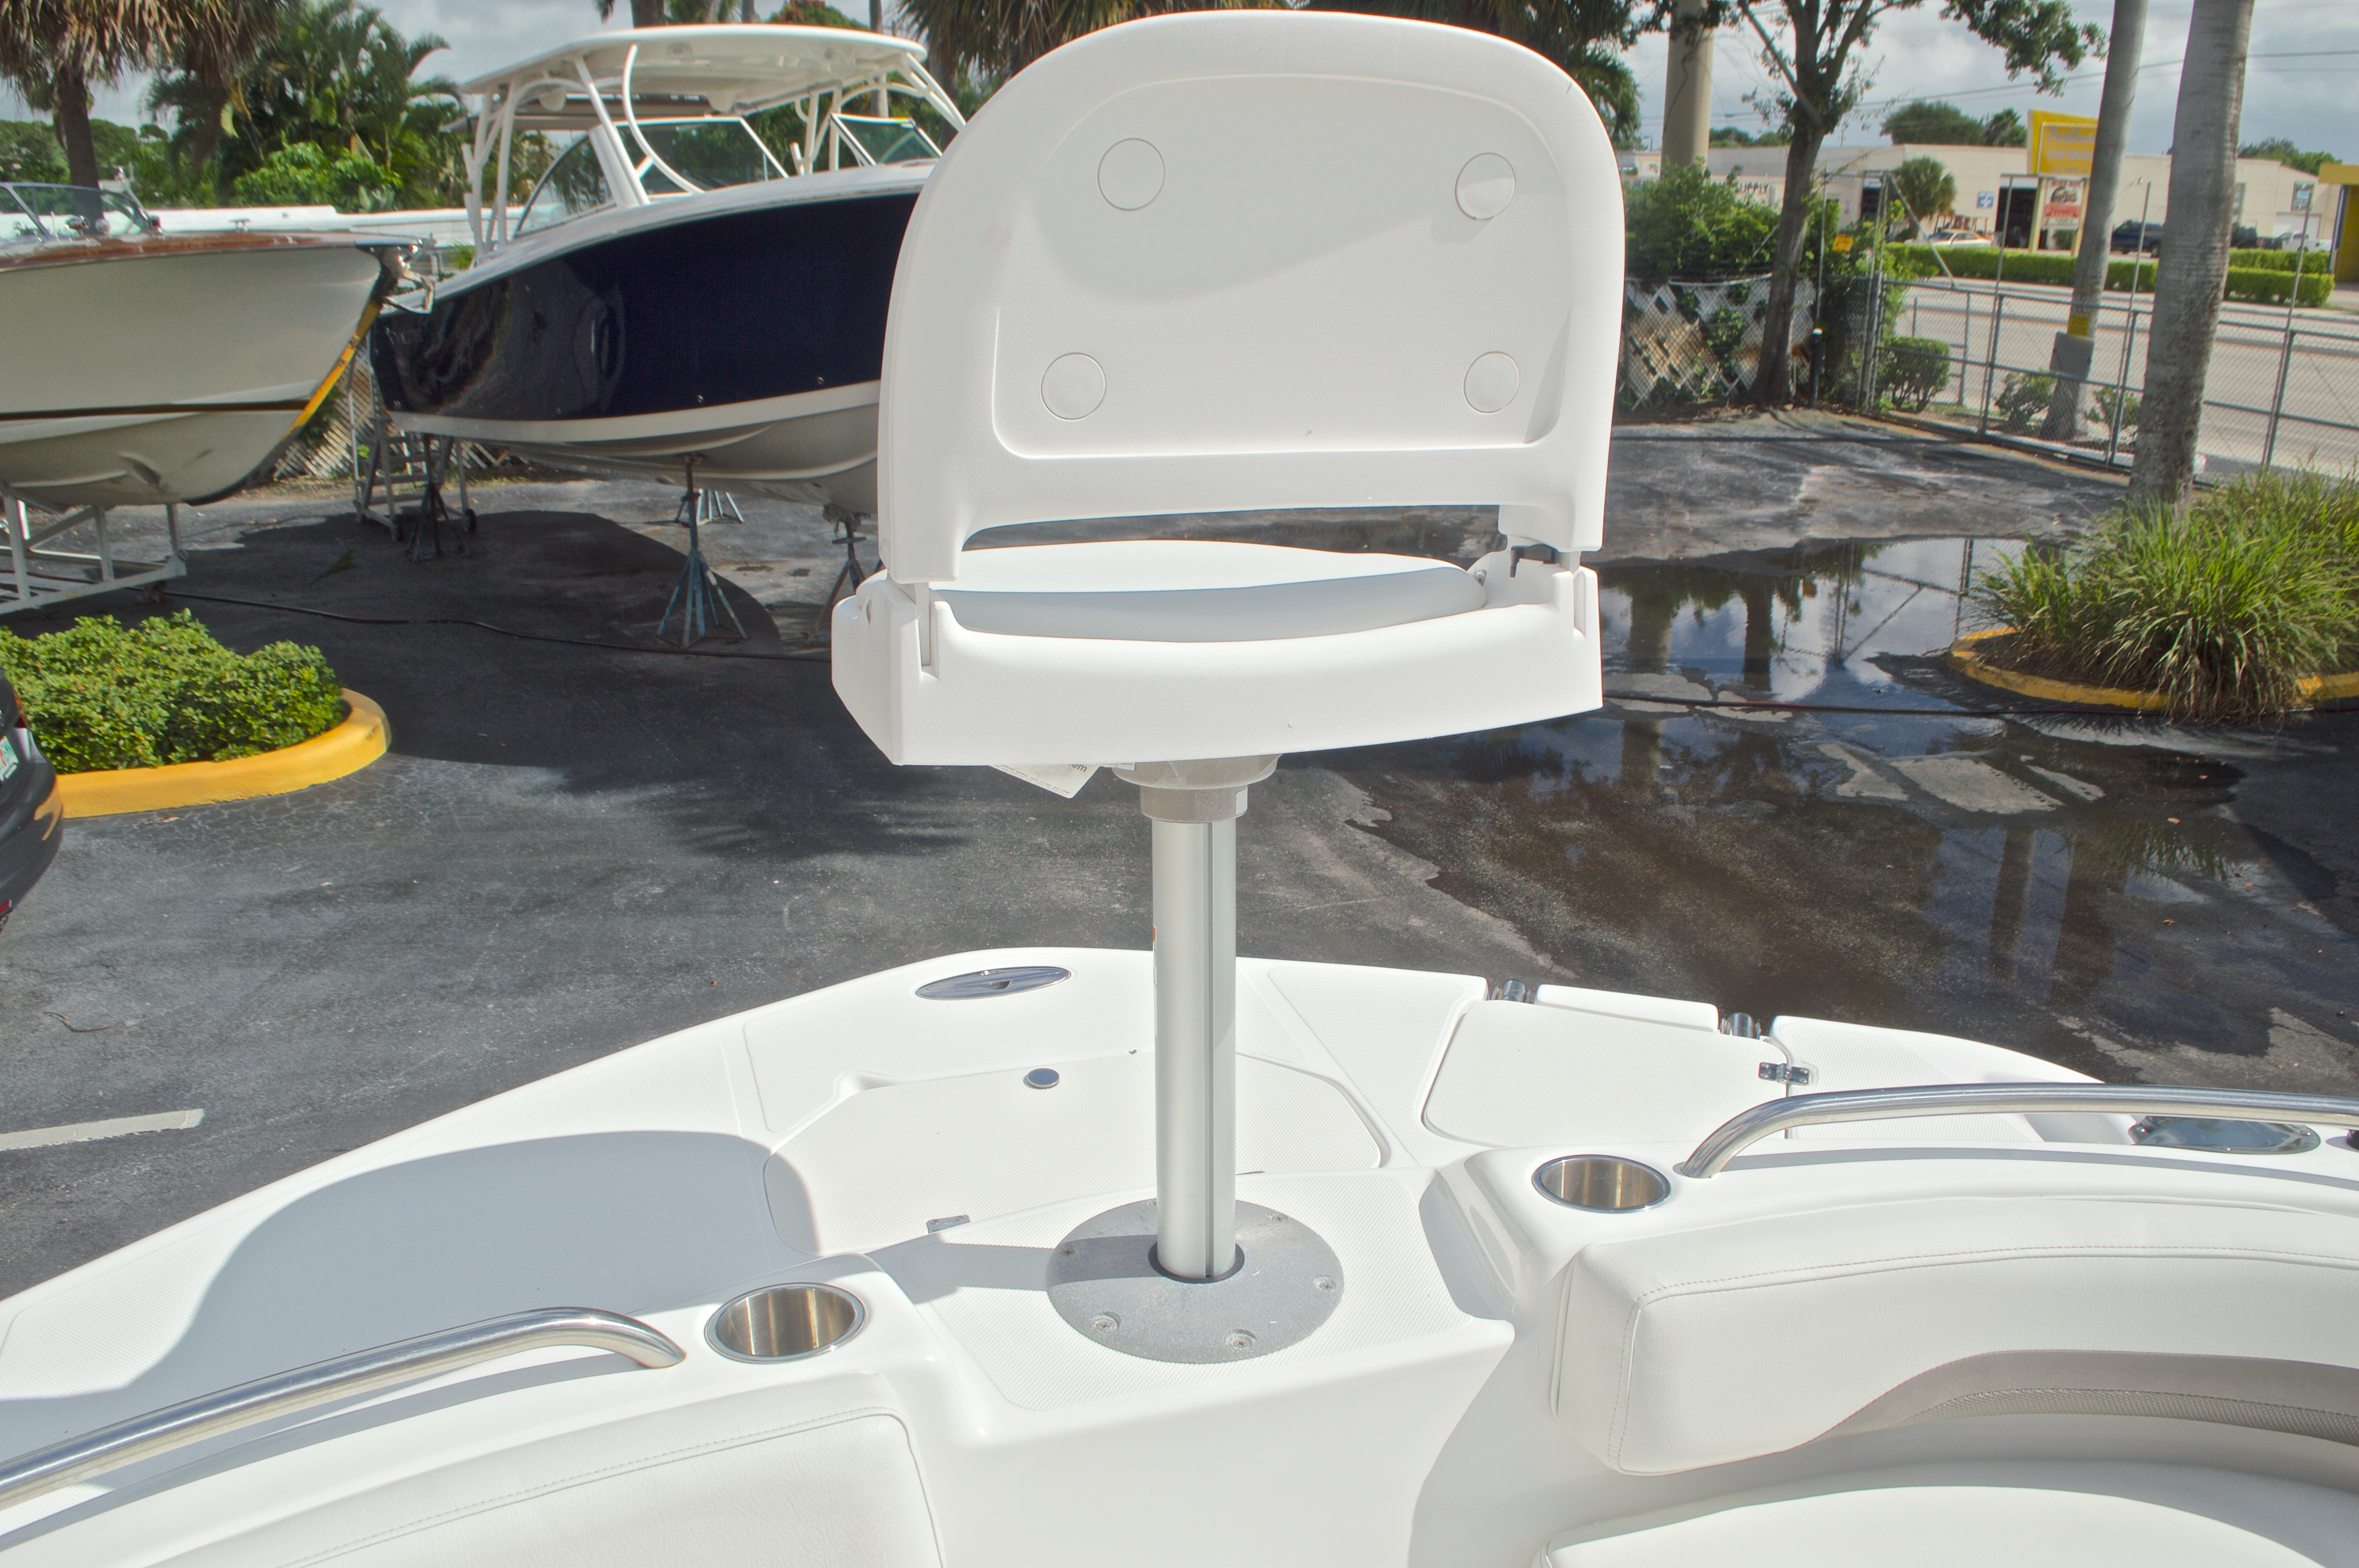 Thumbnail 54 for Used 2014 Hurricane Sundeck Sport SS 231 OB boat for sale in West Palm Beach, FL